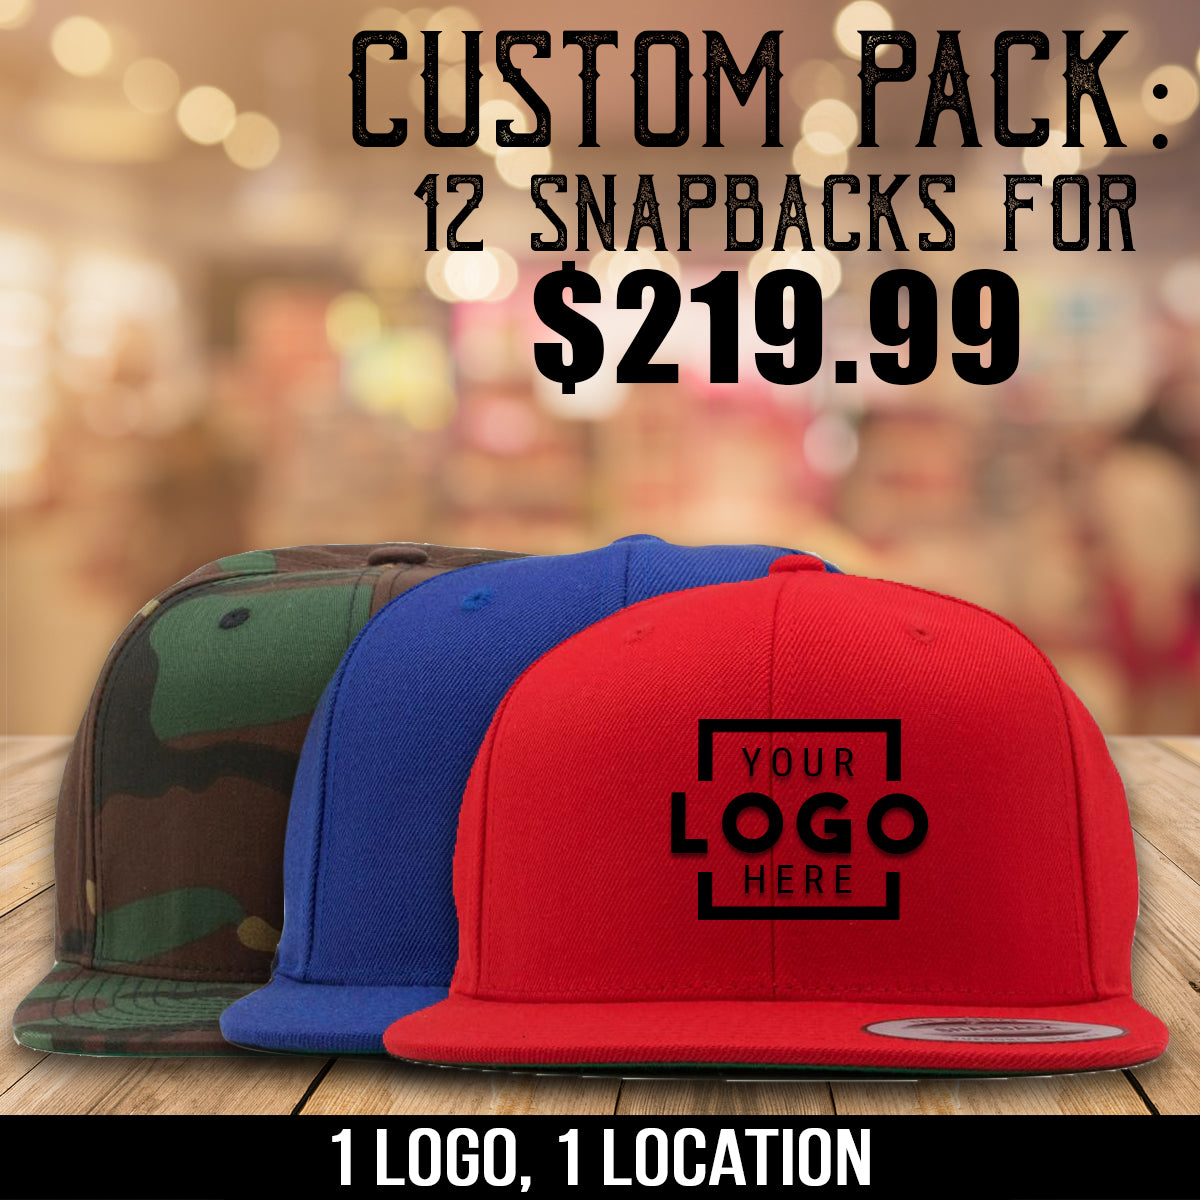 Get 12 snapback hats with one logo embroidered on each for $219.99